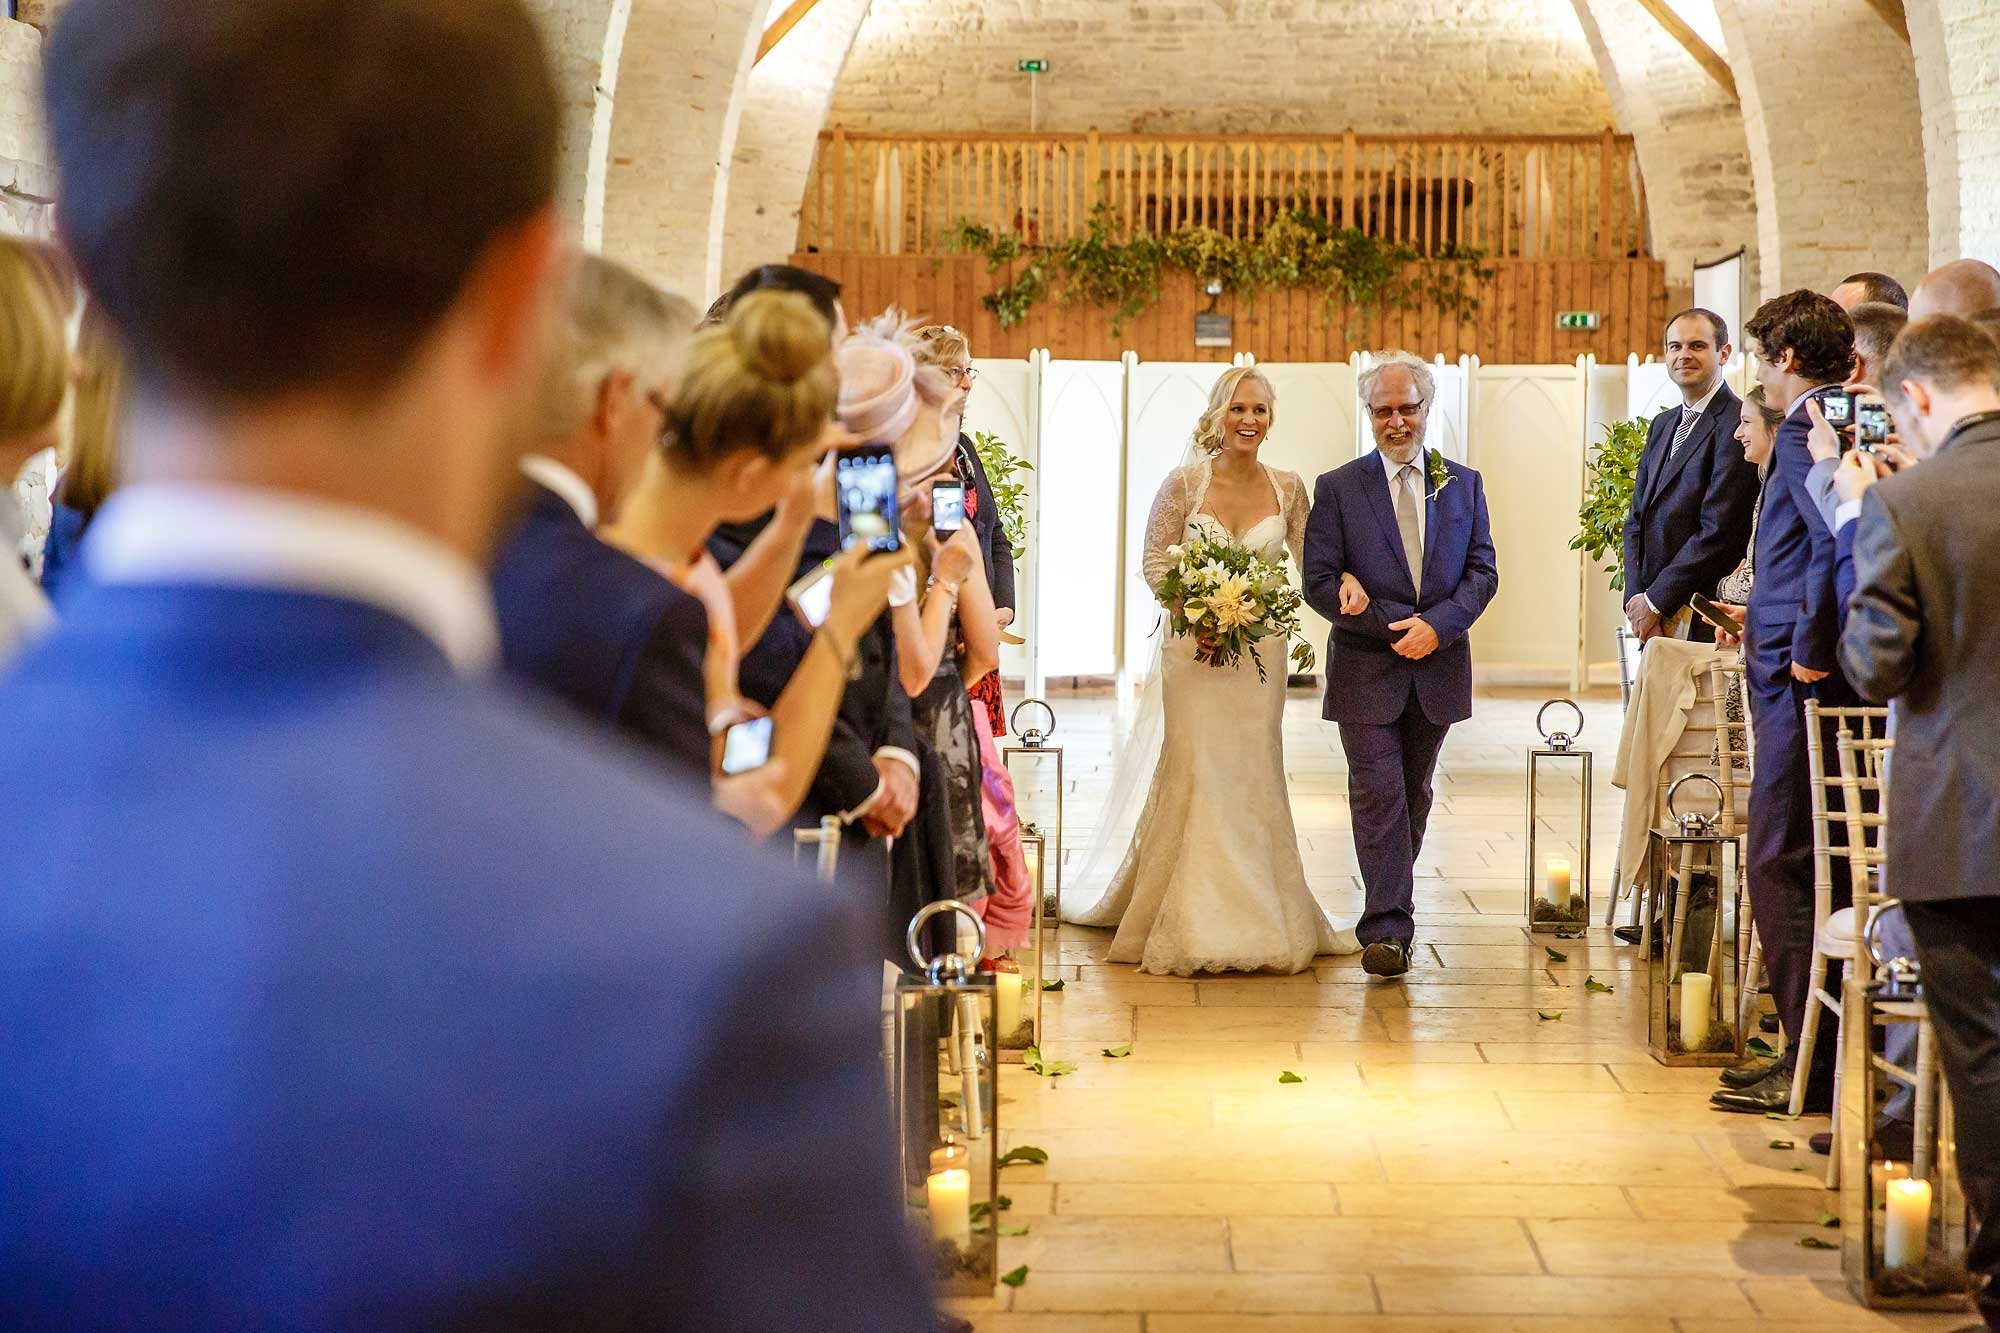 Bride walks down the aisle at Tithe Barn wedding